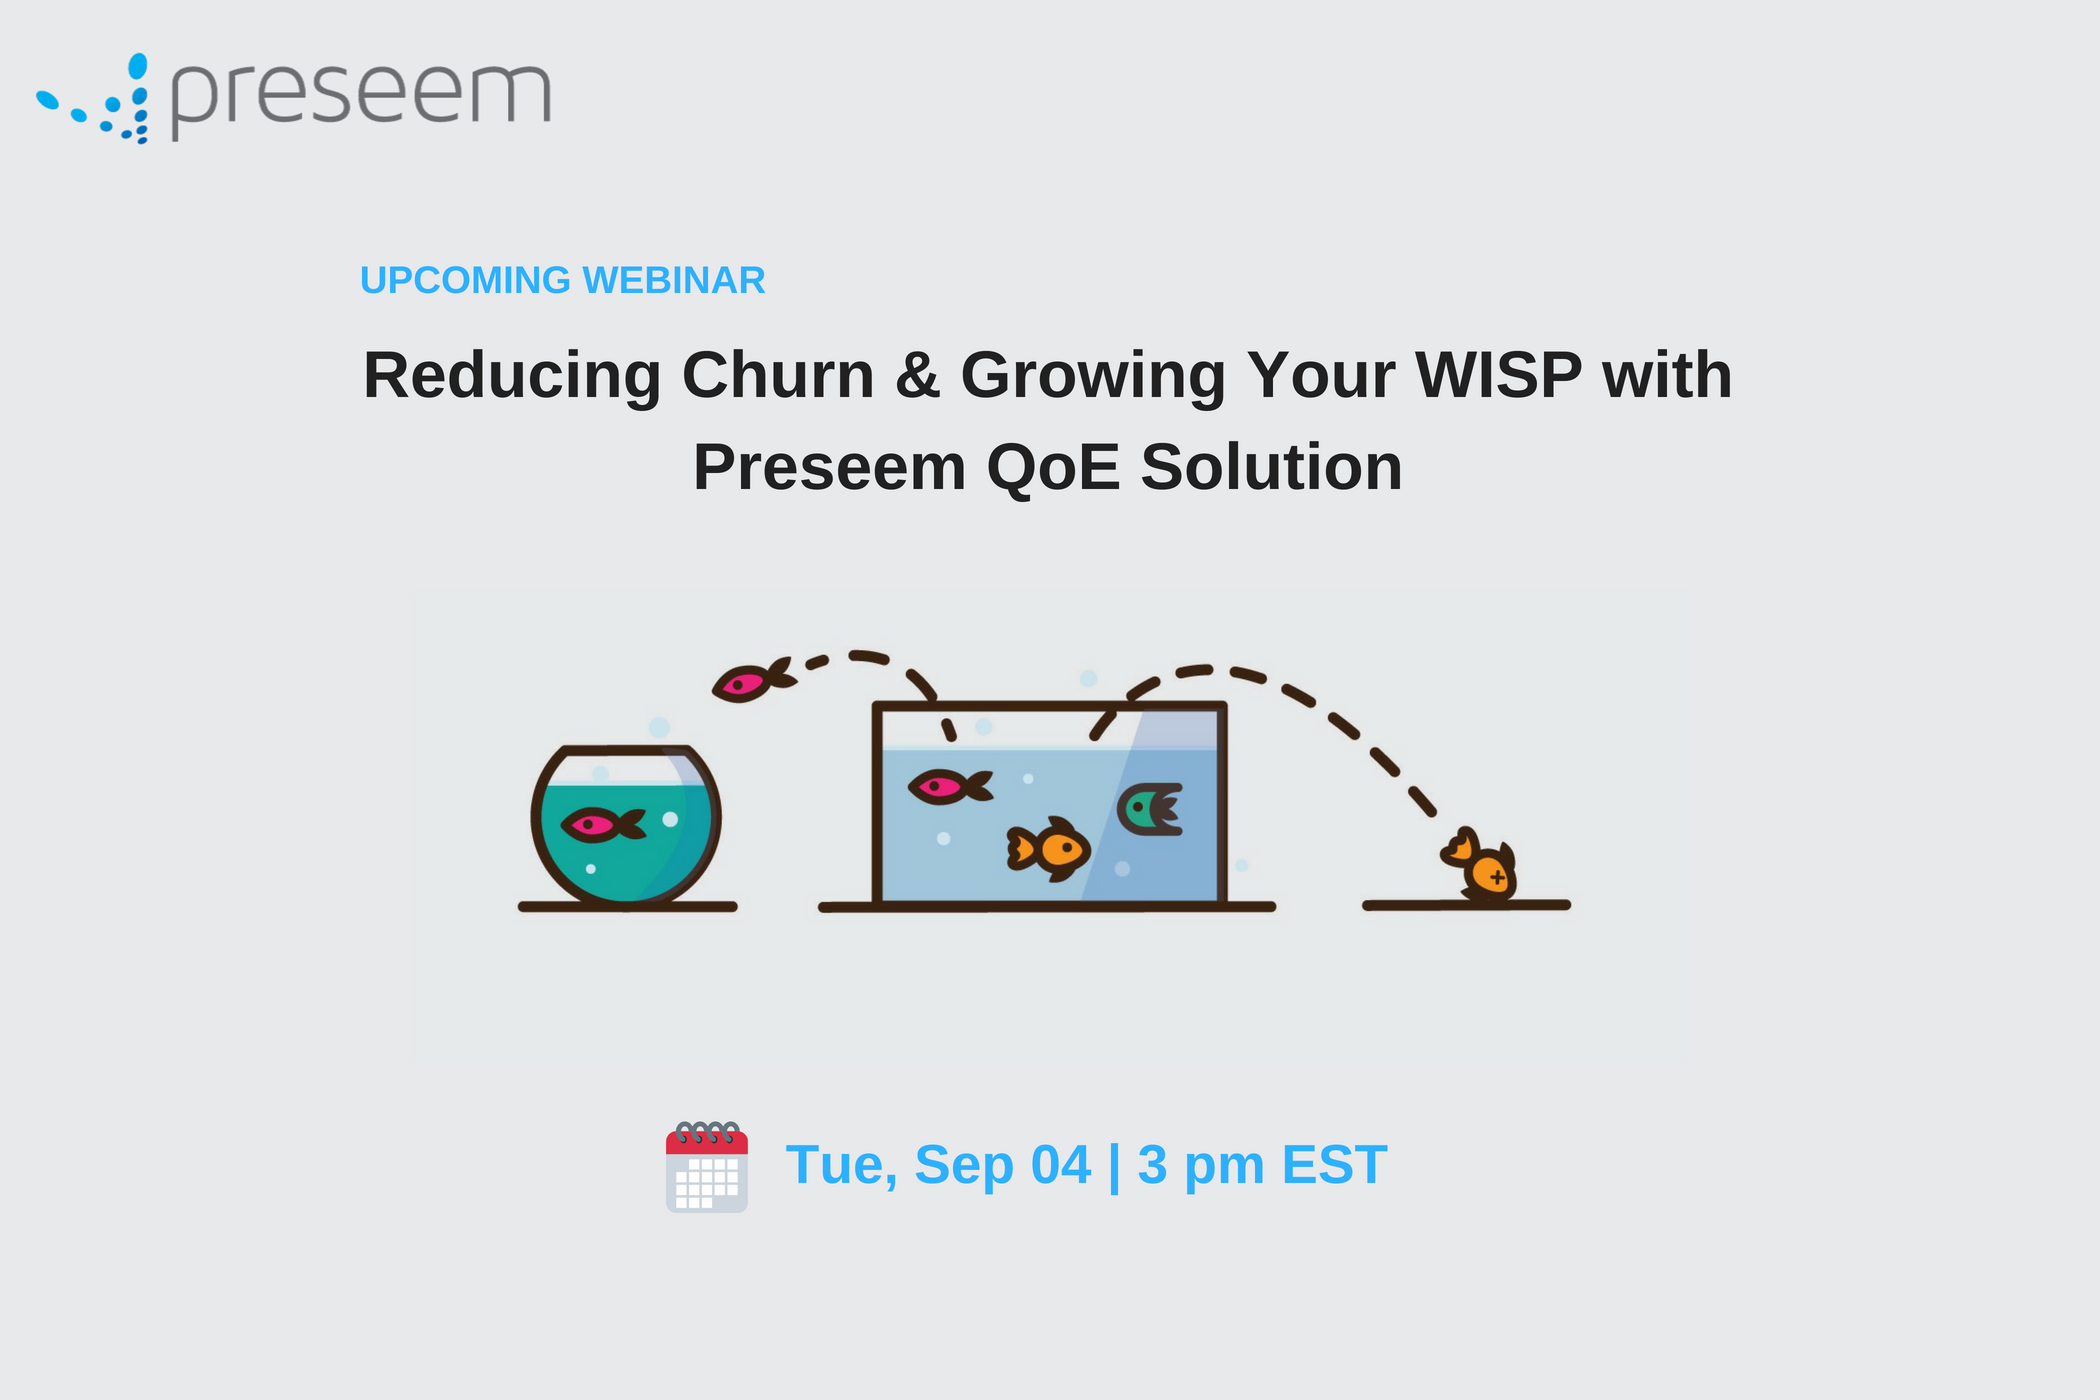 Reducing Churn & Growing Your WISP with Preseem (Webinar)